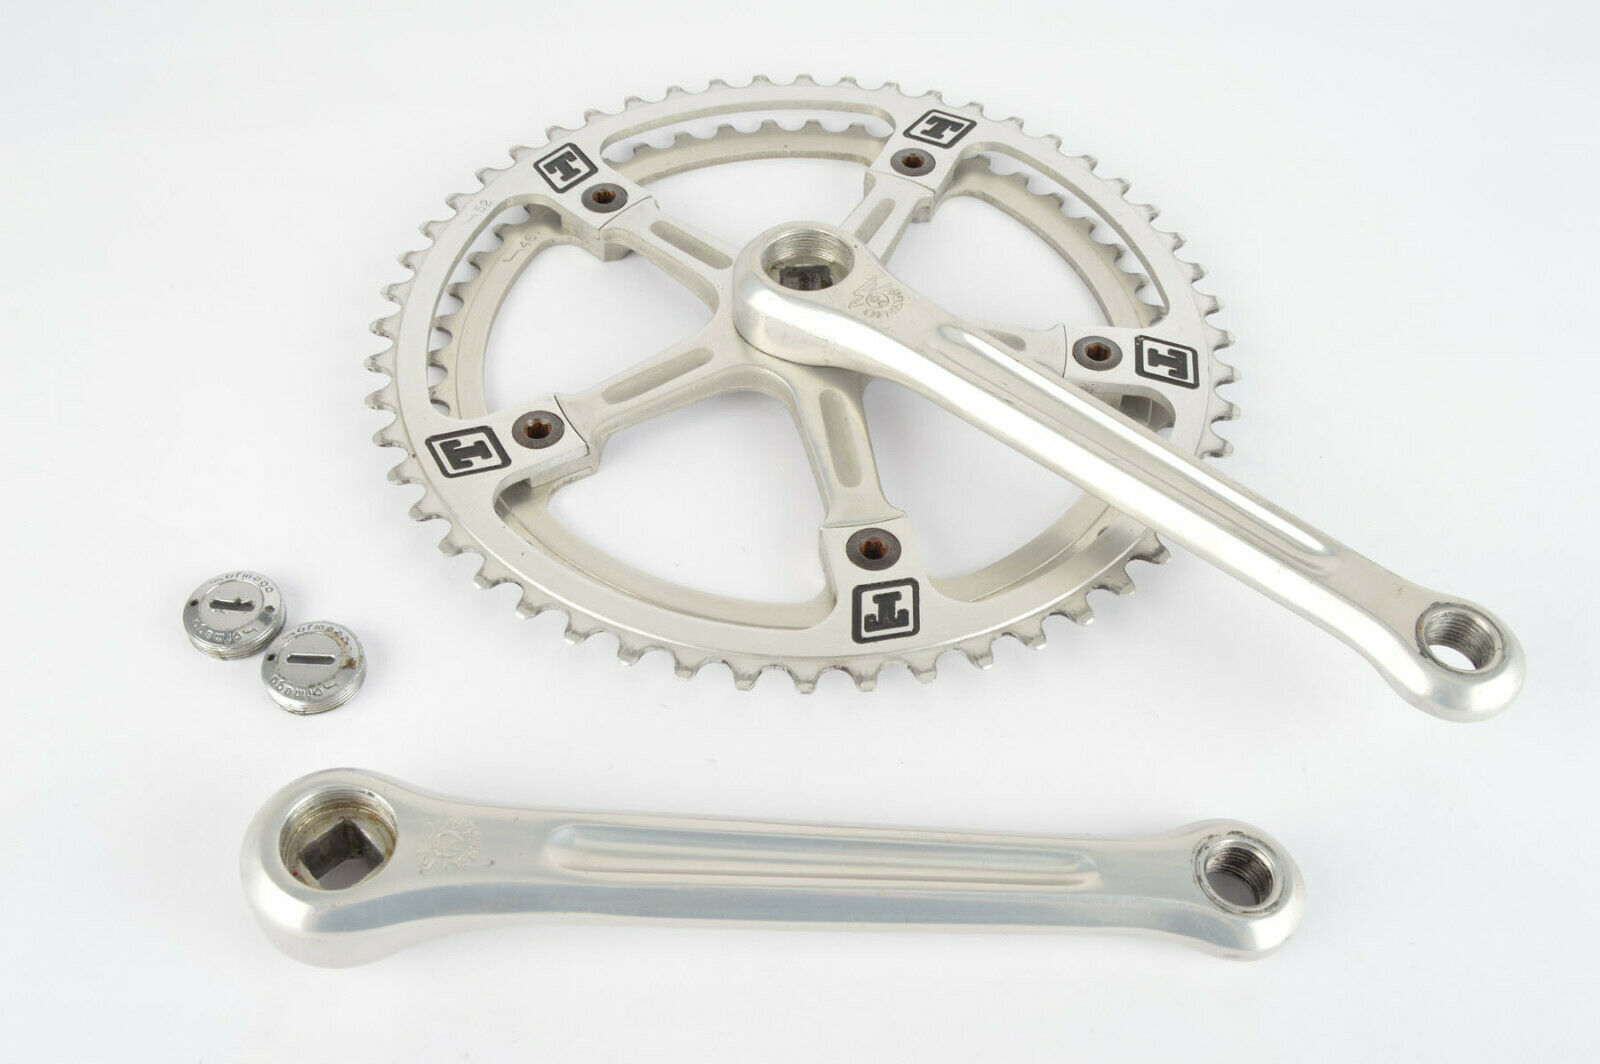 Ofmega Competizione  1100 Torpado Panto crankset with 46 52 teeth and 170mm